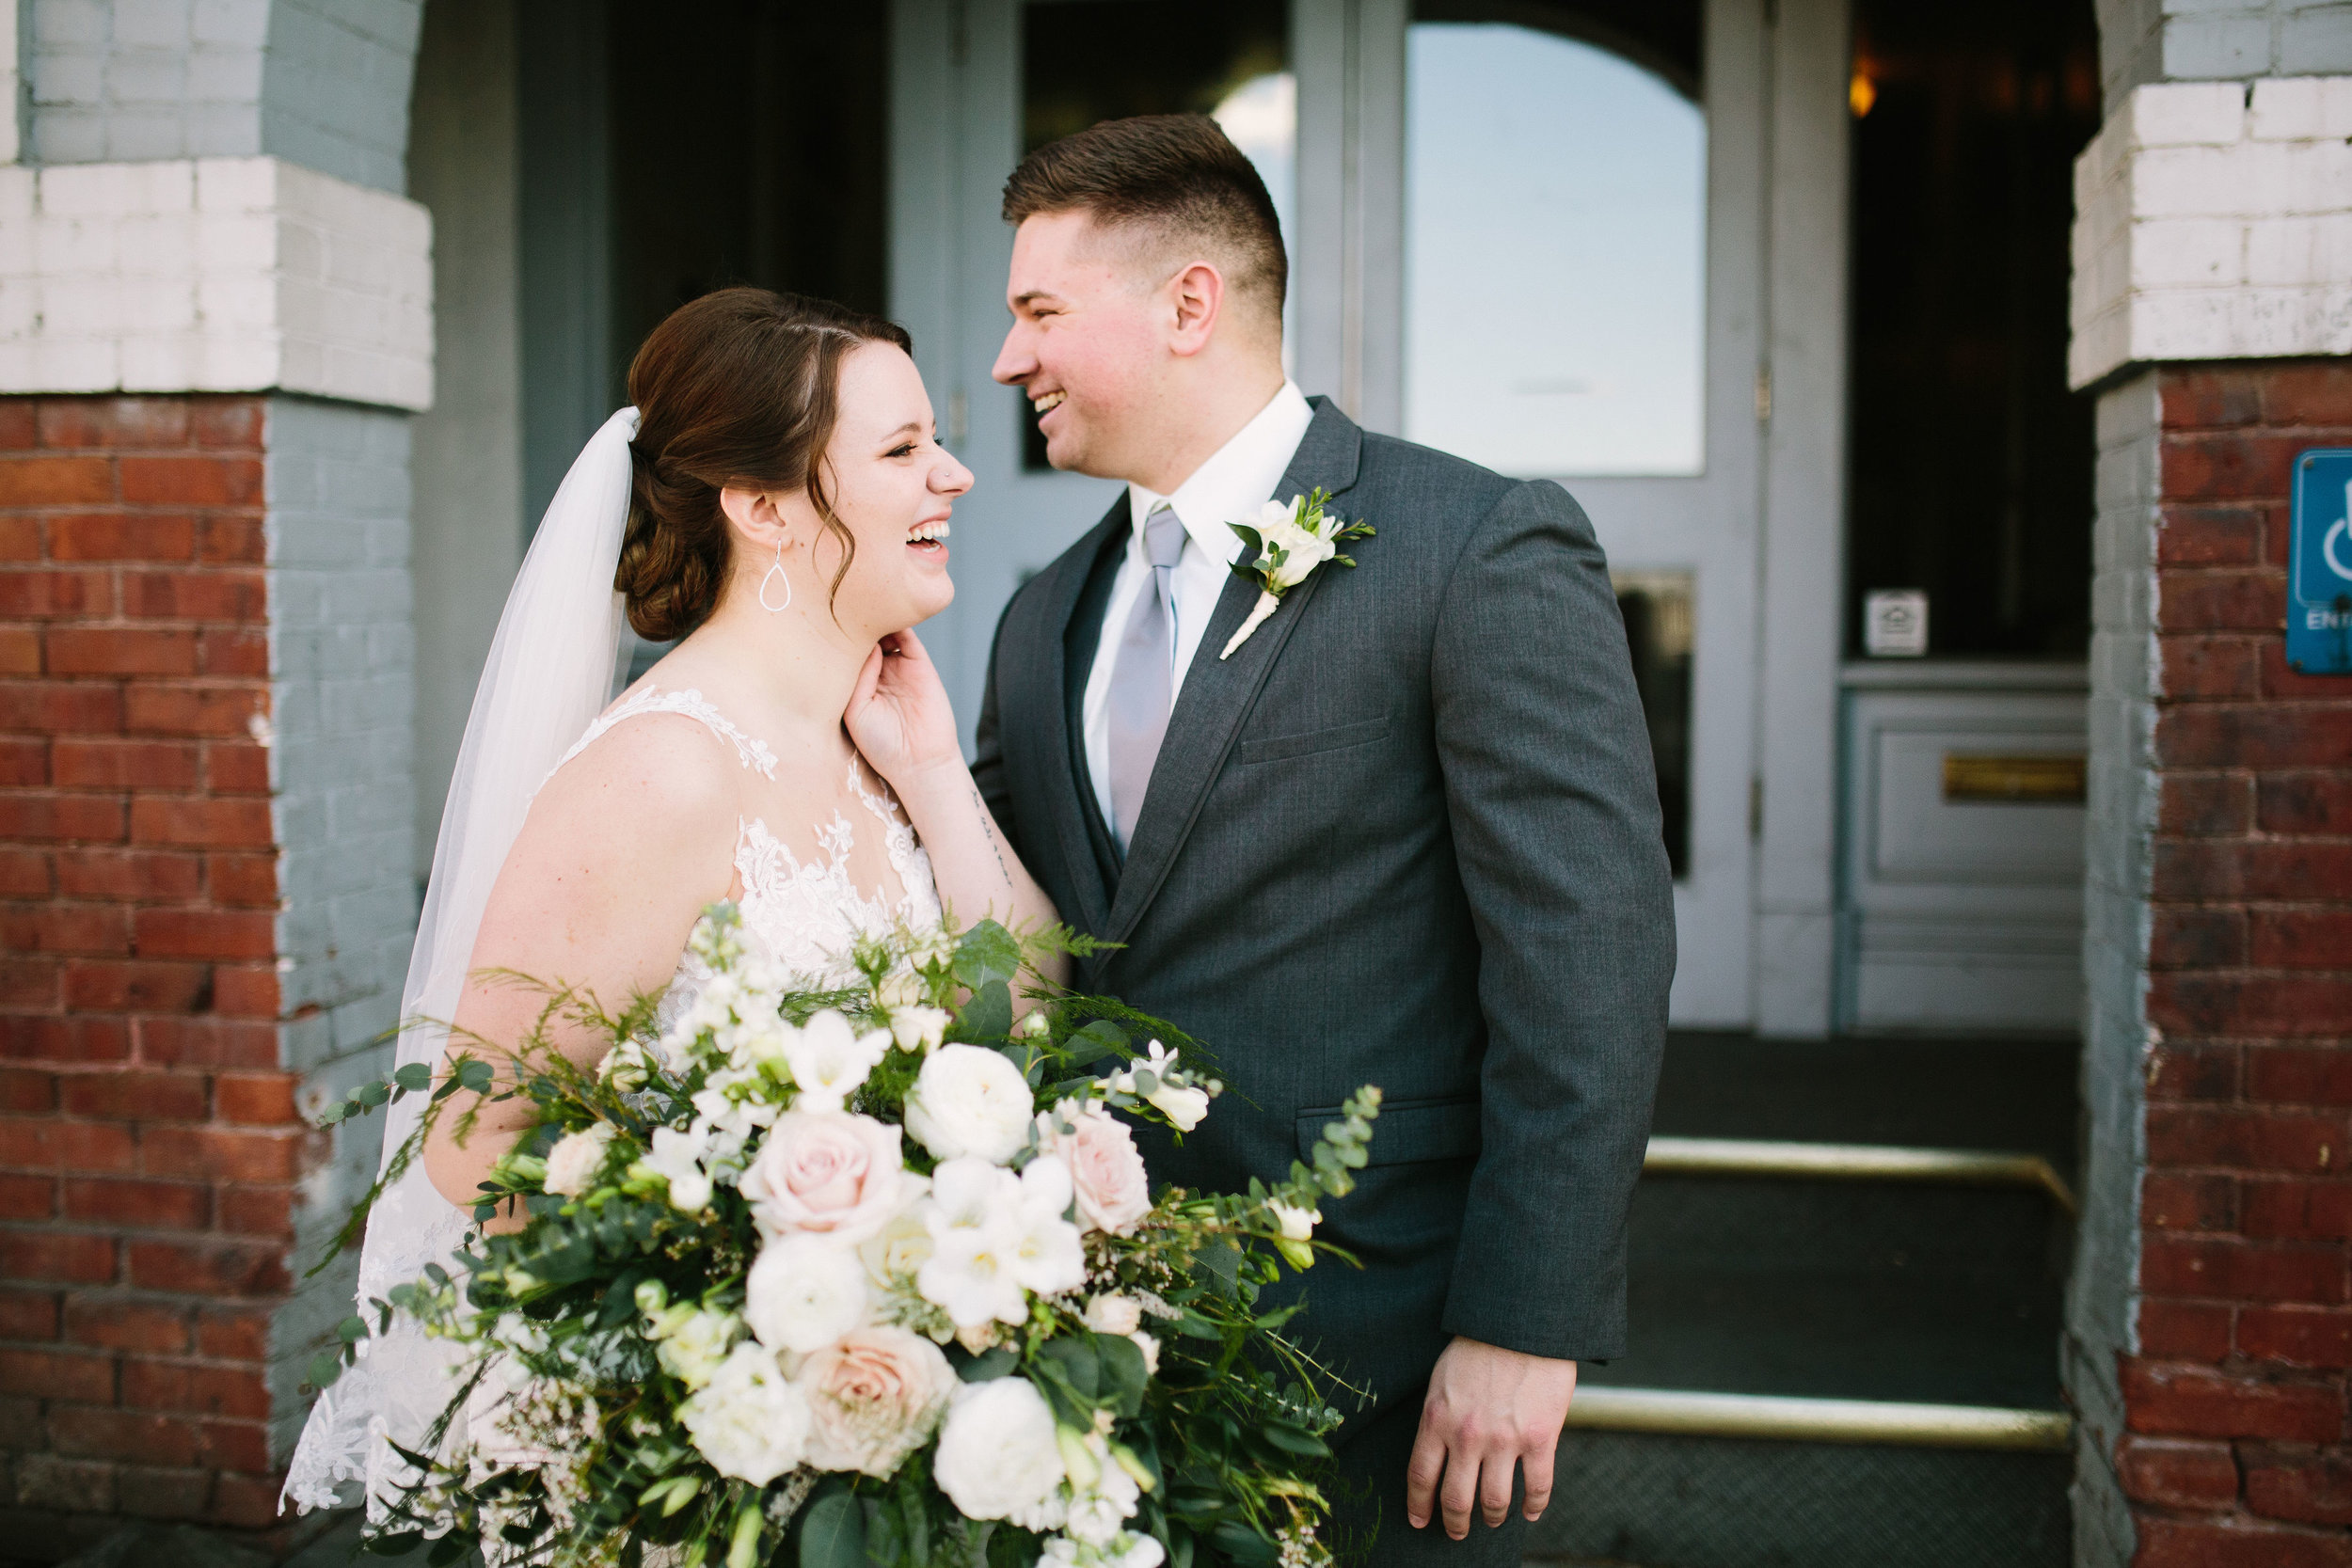 Fun Rustic spokane wedding groom and bride laughing together outside